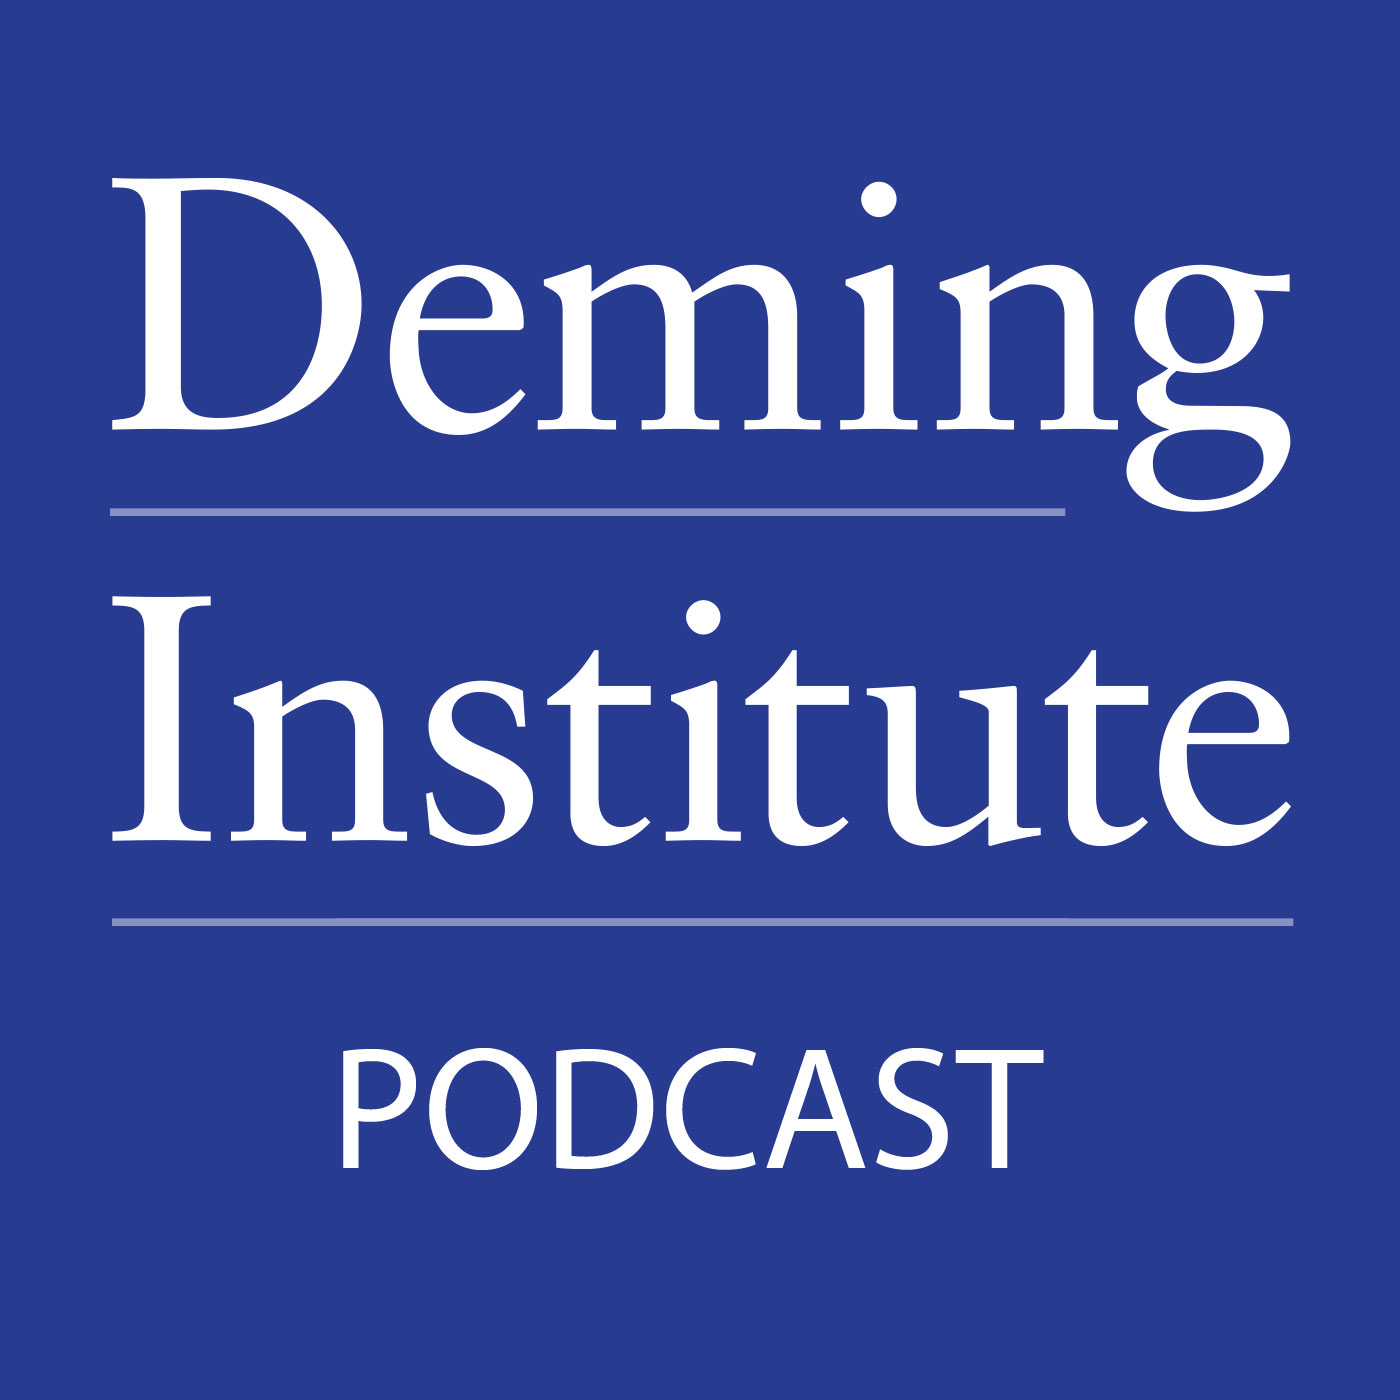 Artwork for Deming Lens #40 - My Top 5 Favorite Deming Institute Podcast Episodes